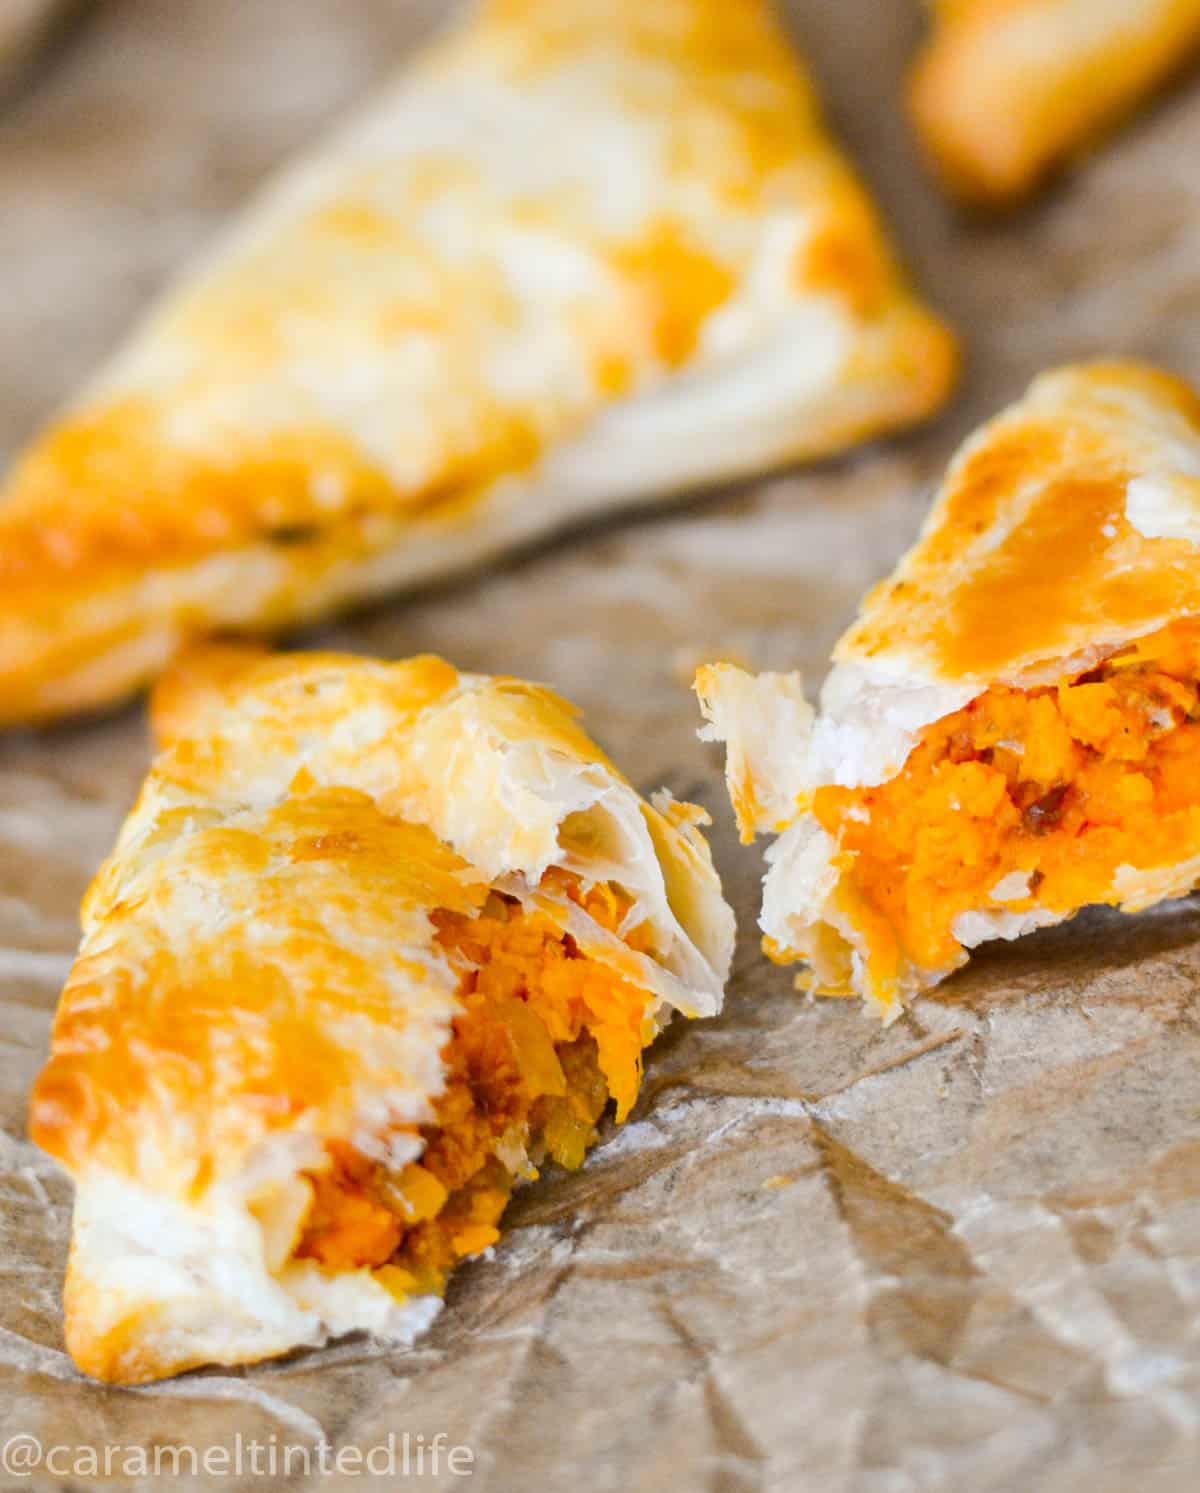 Puff pastry samosas broken into two